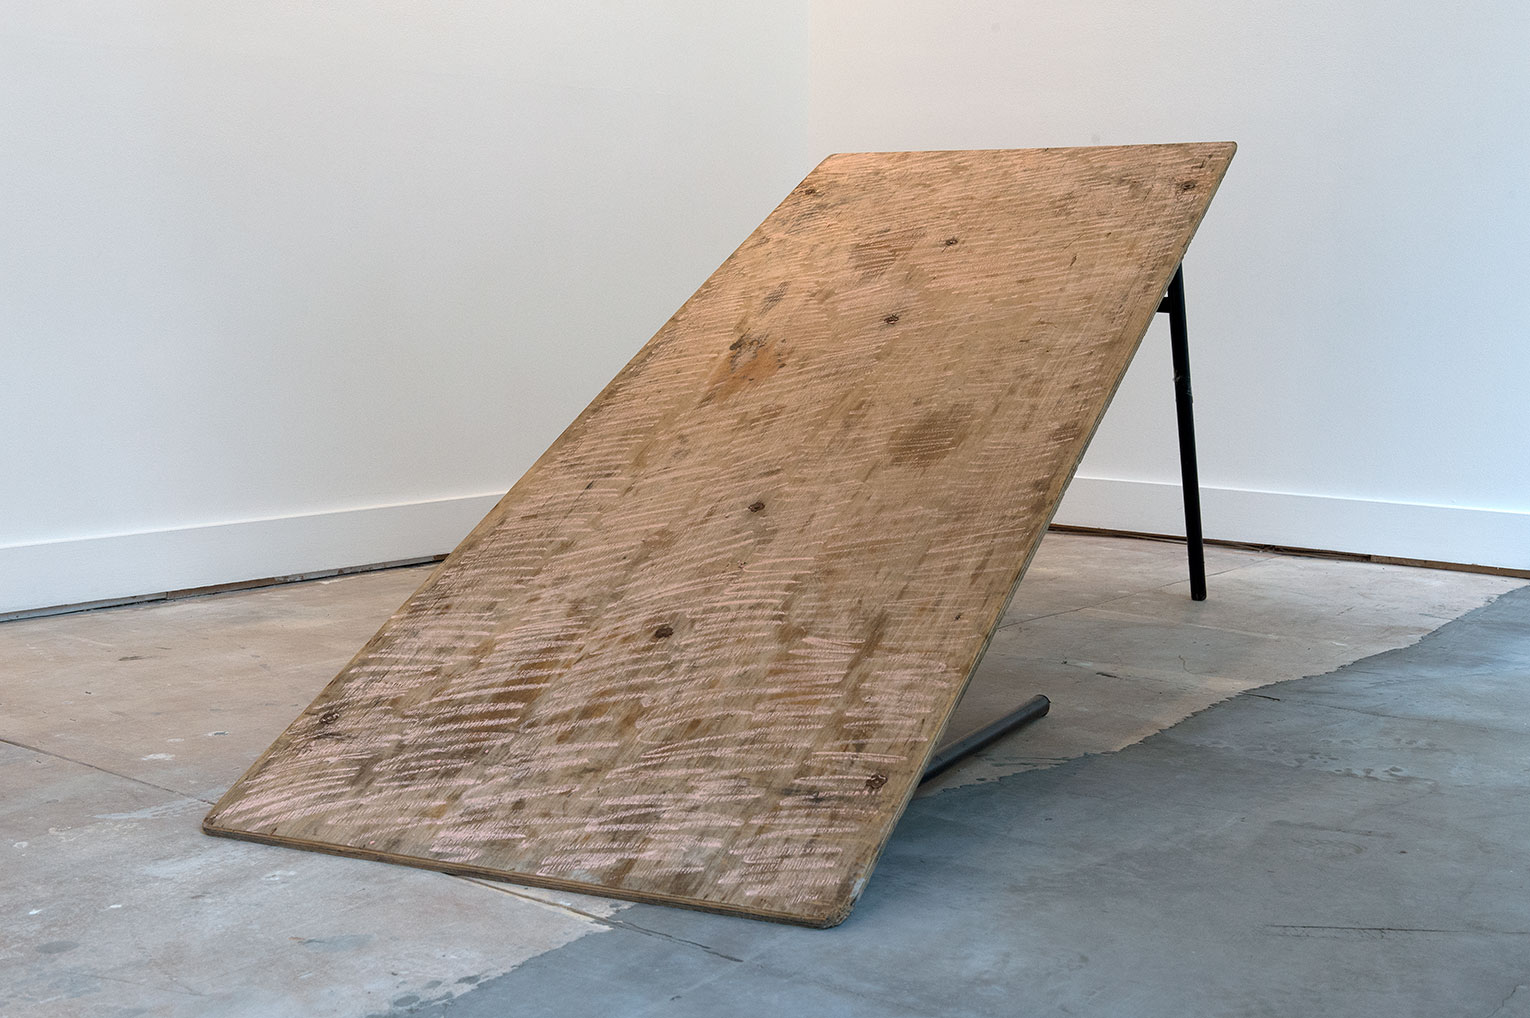 <b>Title: </b>Mean (6ft trestle)<br /><b>Year: </b>2011<br /><b>Medium: </b>Hire function table and chalk<br /><b>Size: </b>Dimensions variable